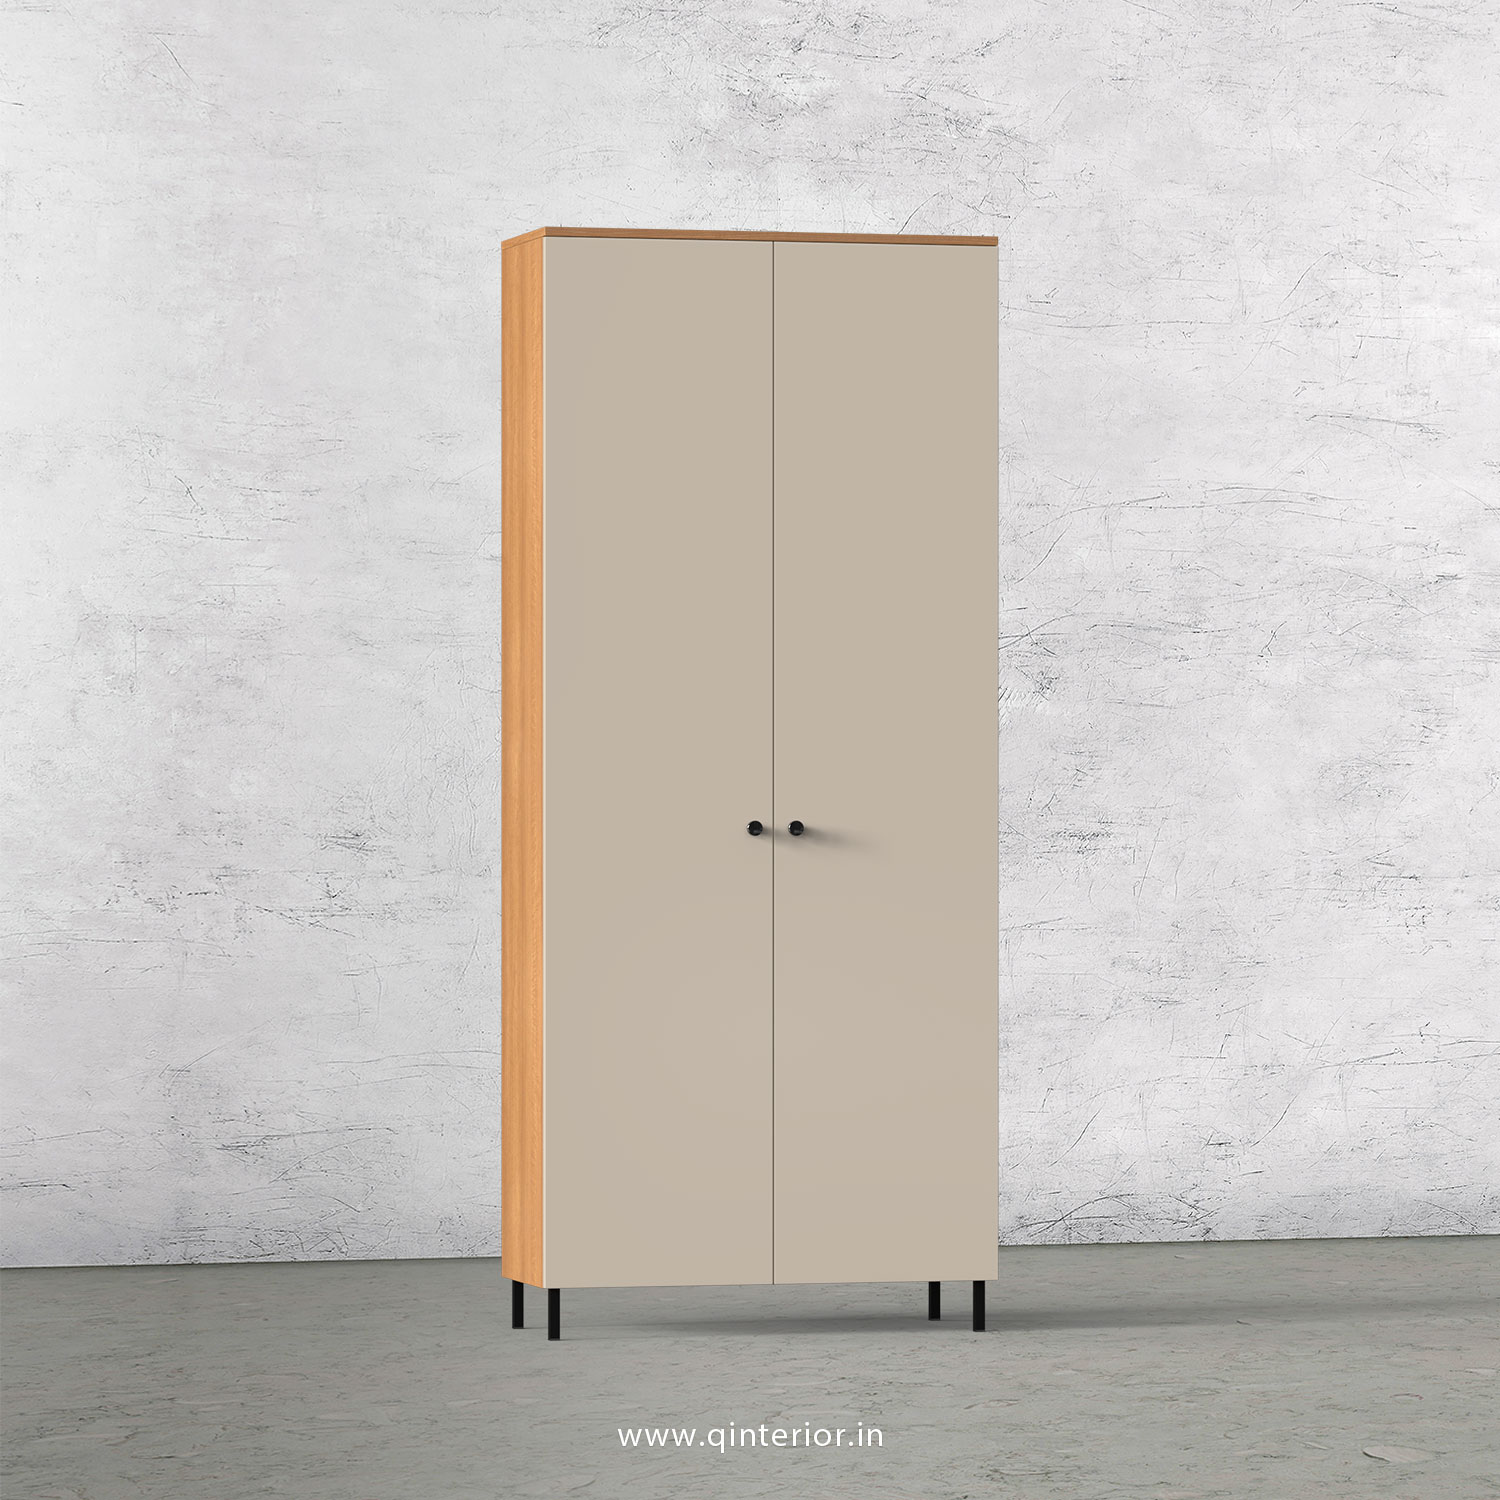 Lambent 2 Door Wardrobe in Oak and Irish Cream Finish – DWRD001 C21